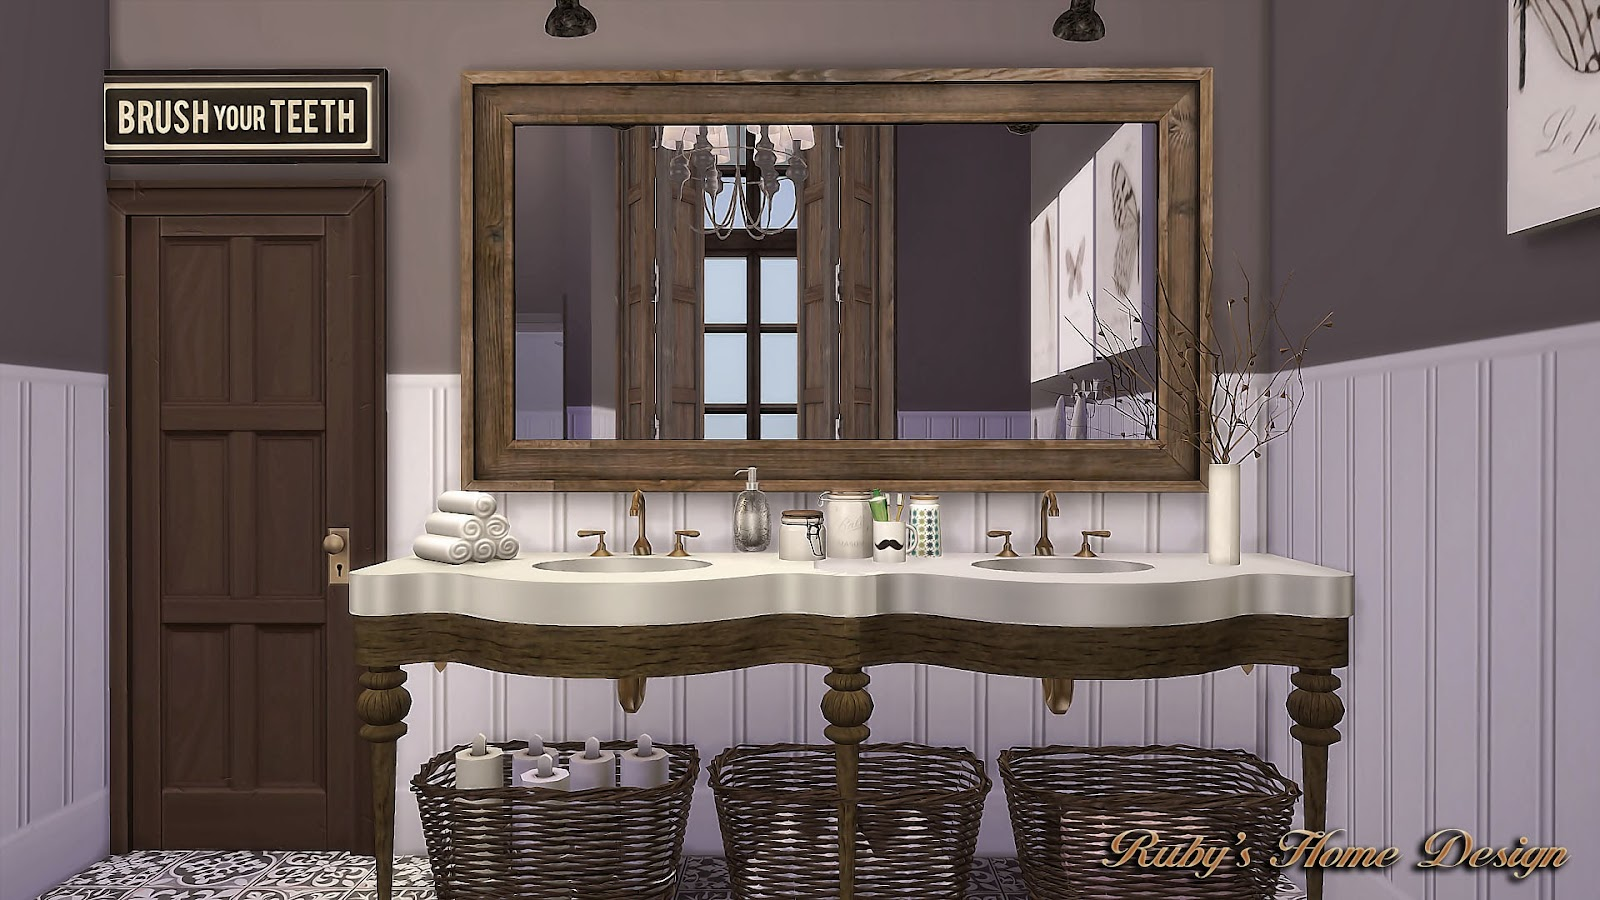 Sims4 Laundry Room Wall Panels 壁紙 Ruby S Home Design